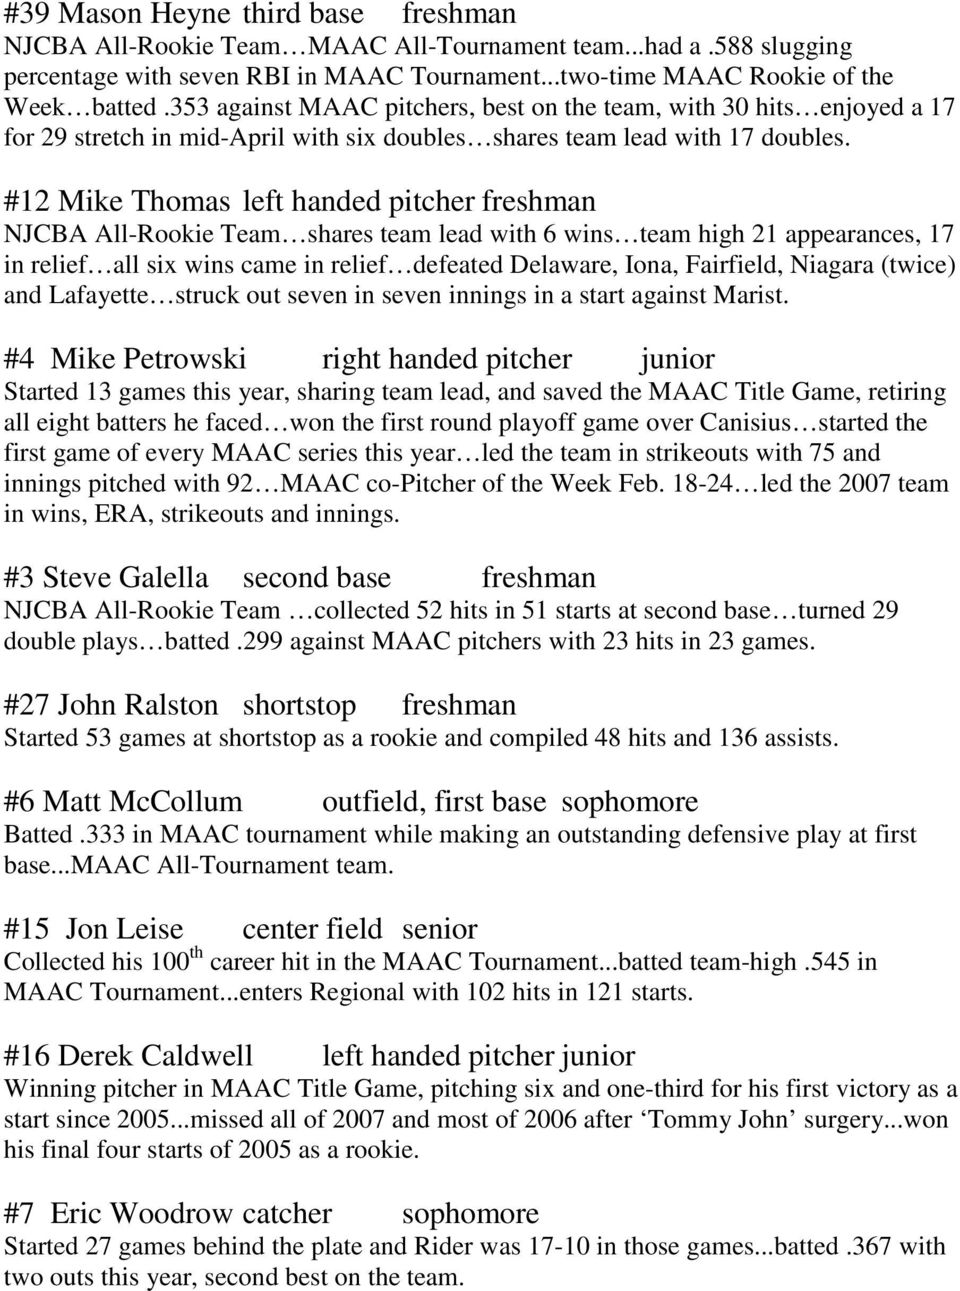 #12 Mike Thomas left handed pitcher freshman NJCBA All-Rookie Team shares team lead with 6 wins team high 21 appearances, 17 in relief all six wins came in relief defeated Delaware, Iona, Fairfield,